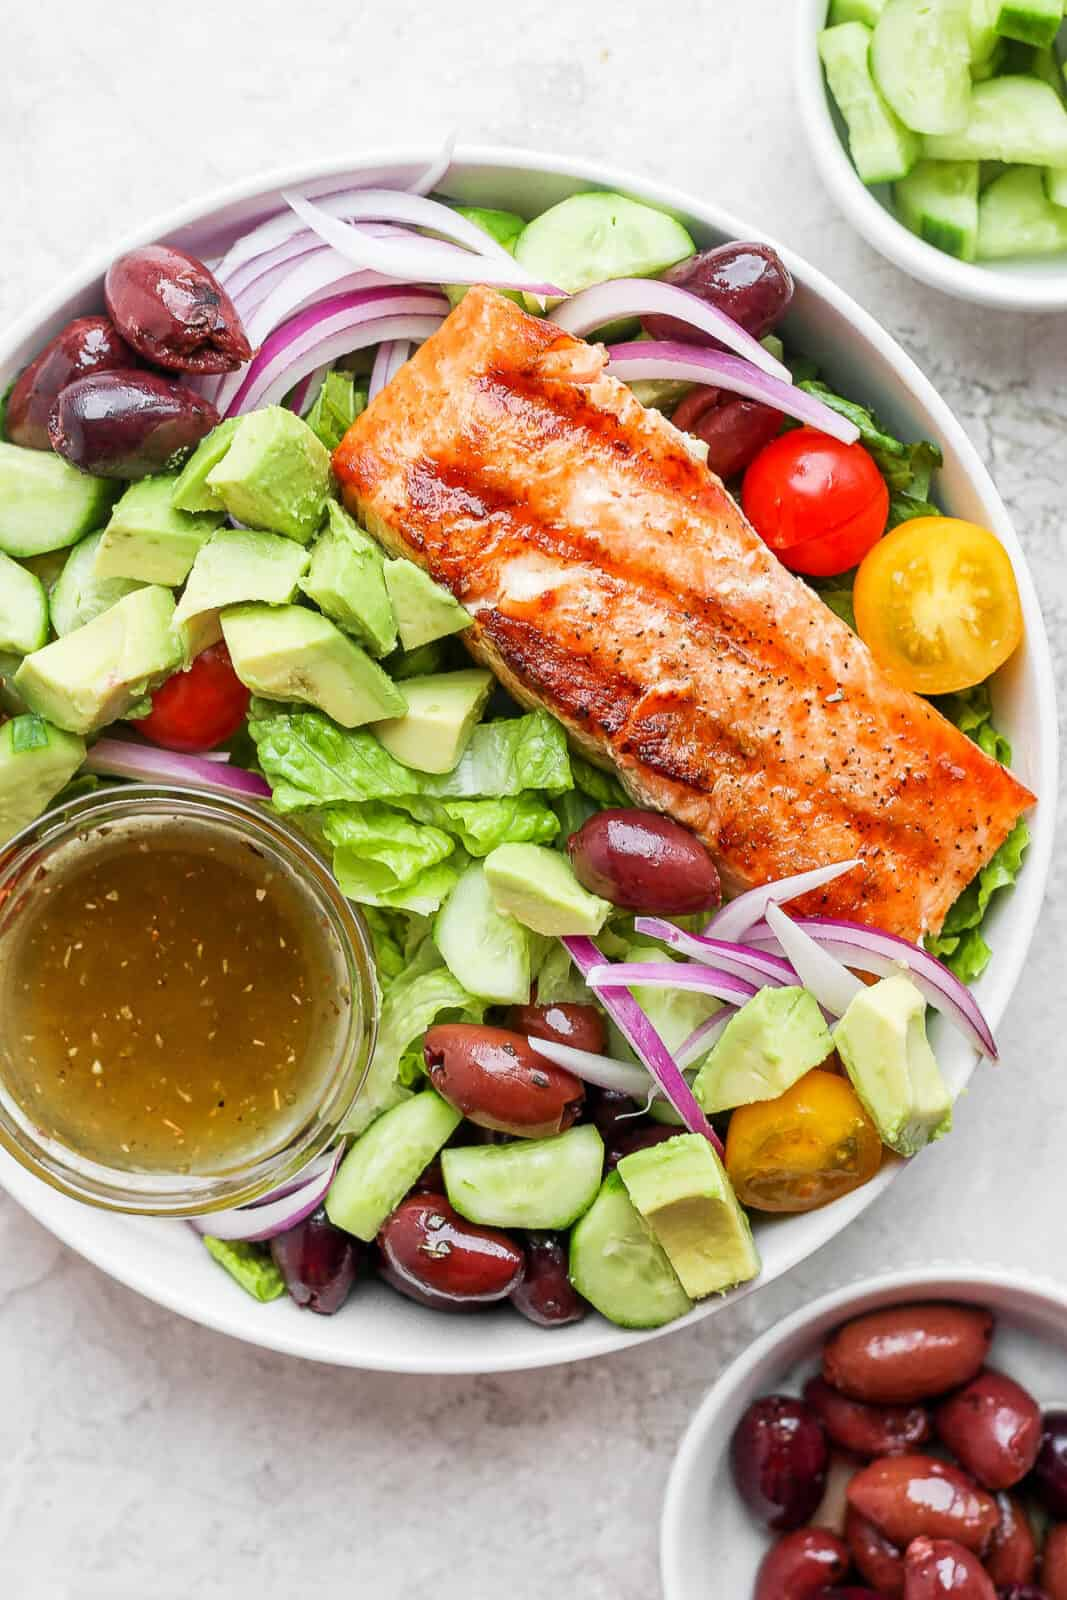 A bowl of grilled salmon salad.